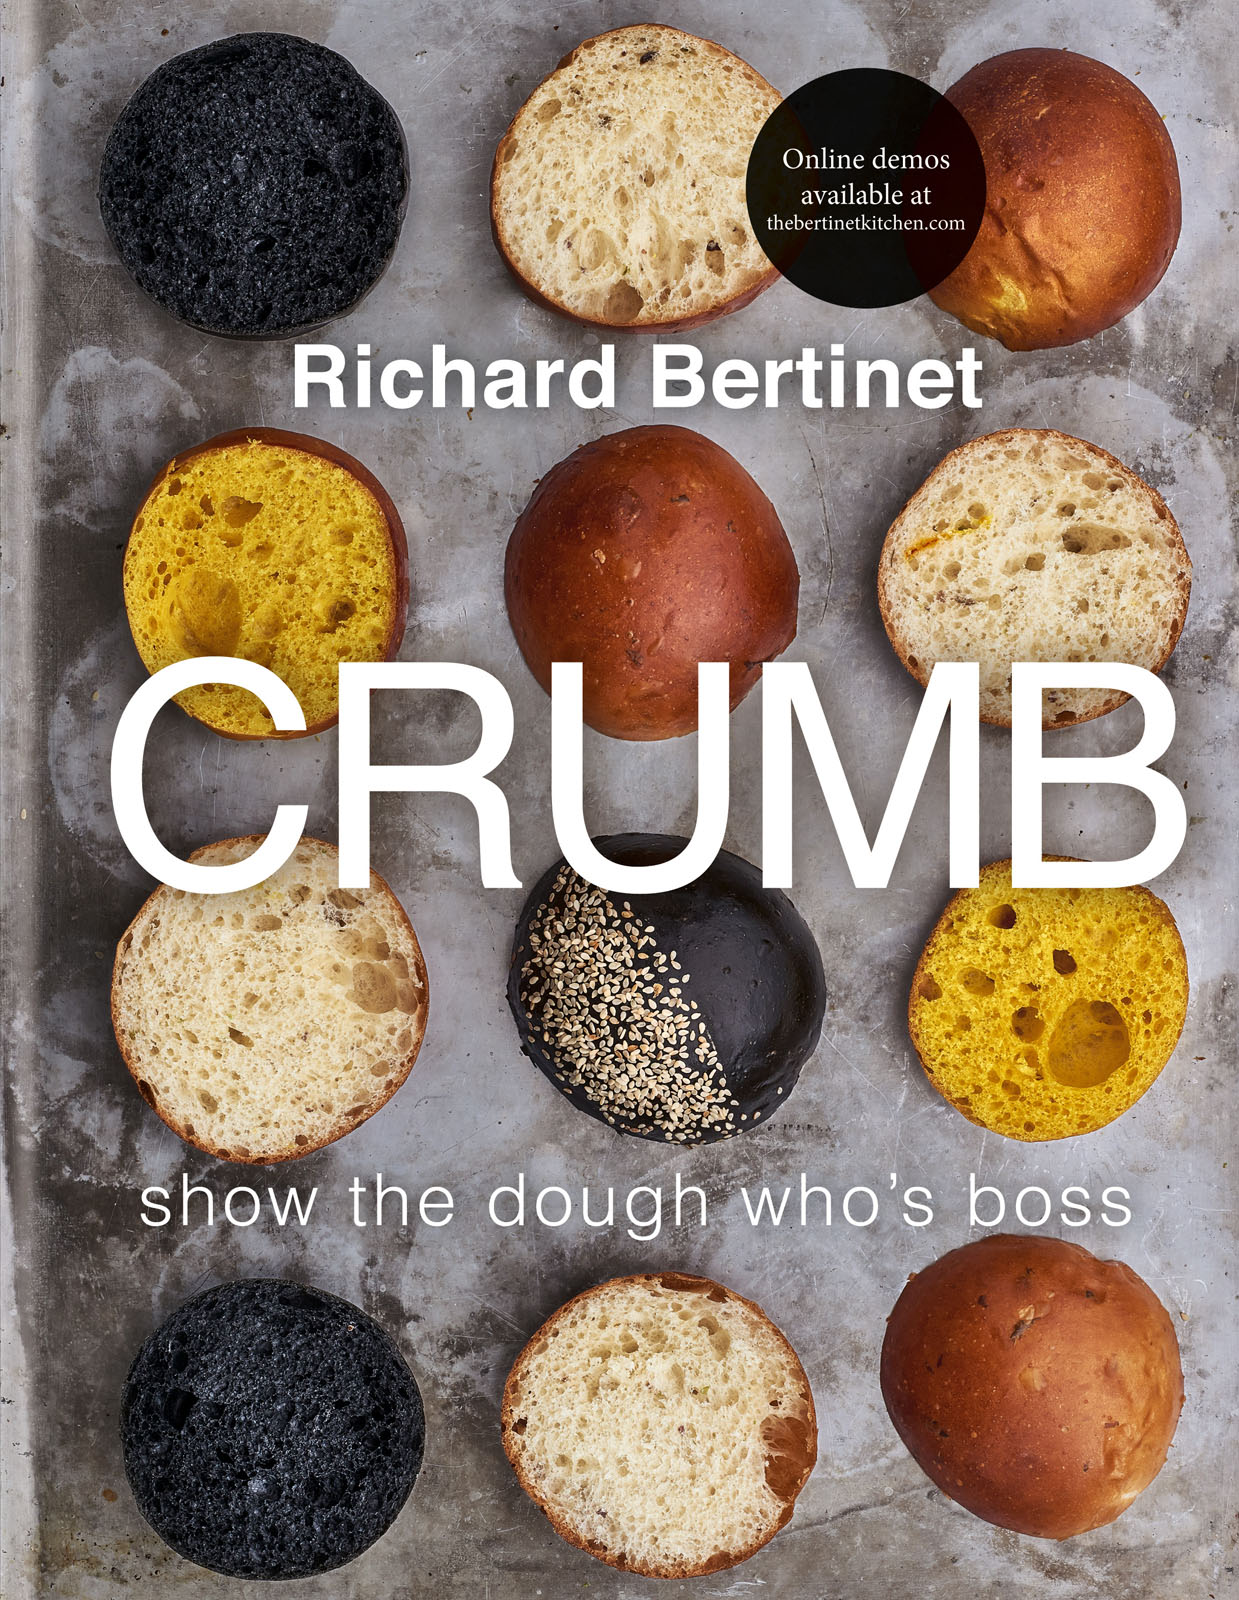 Crumb by Richard Bertinet